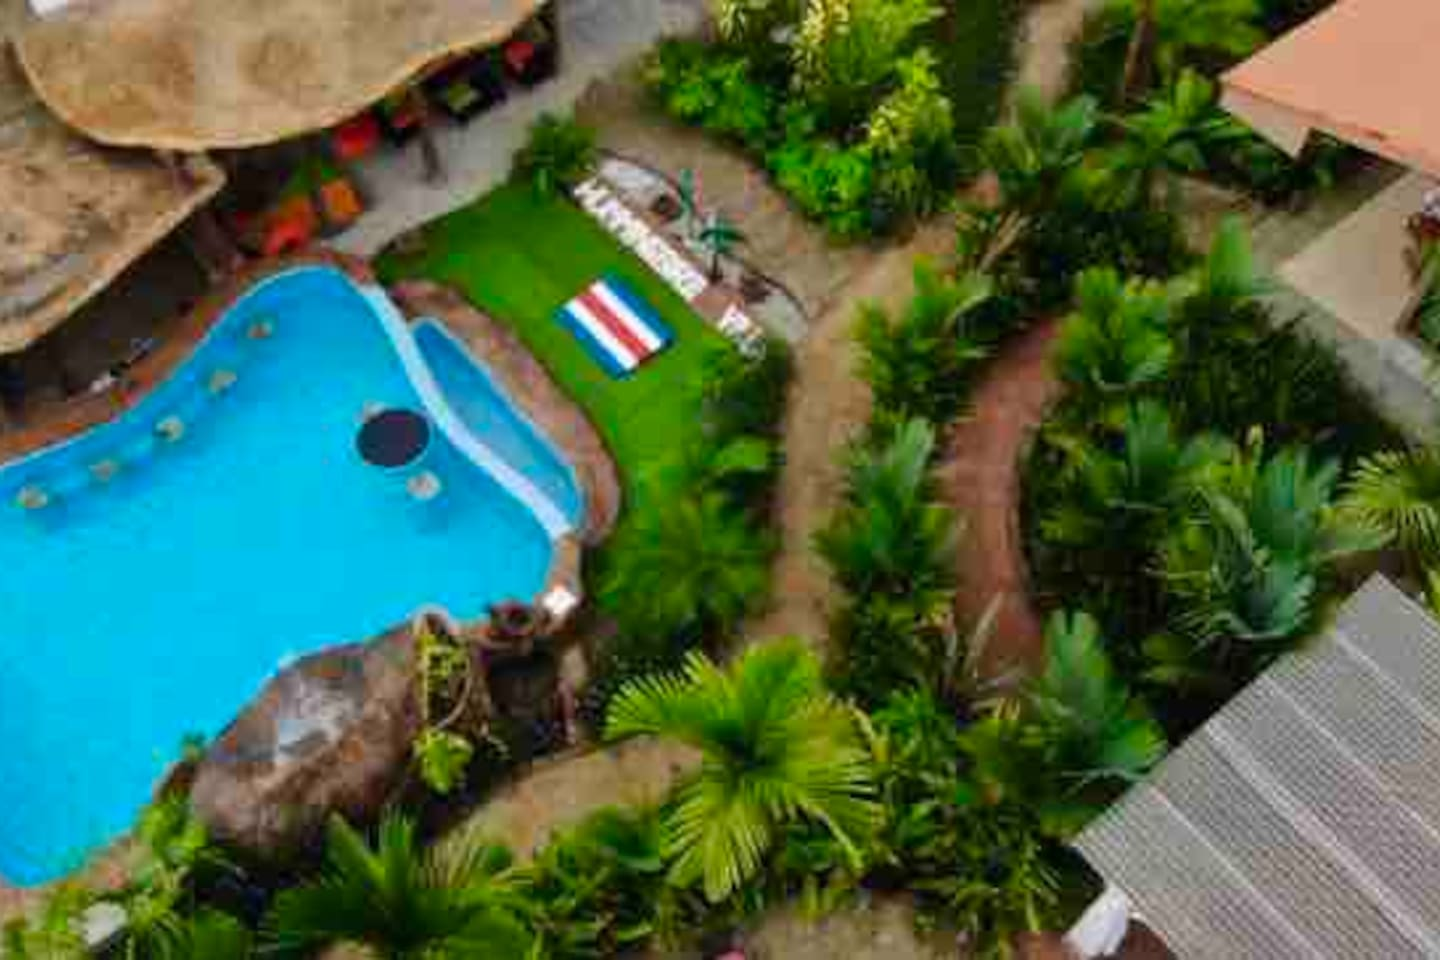 Aereal view of the swimming pool